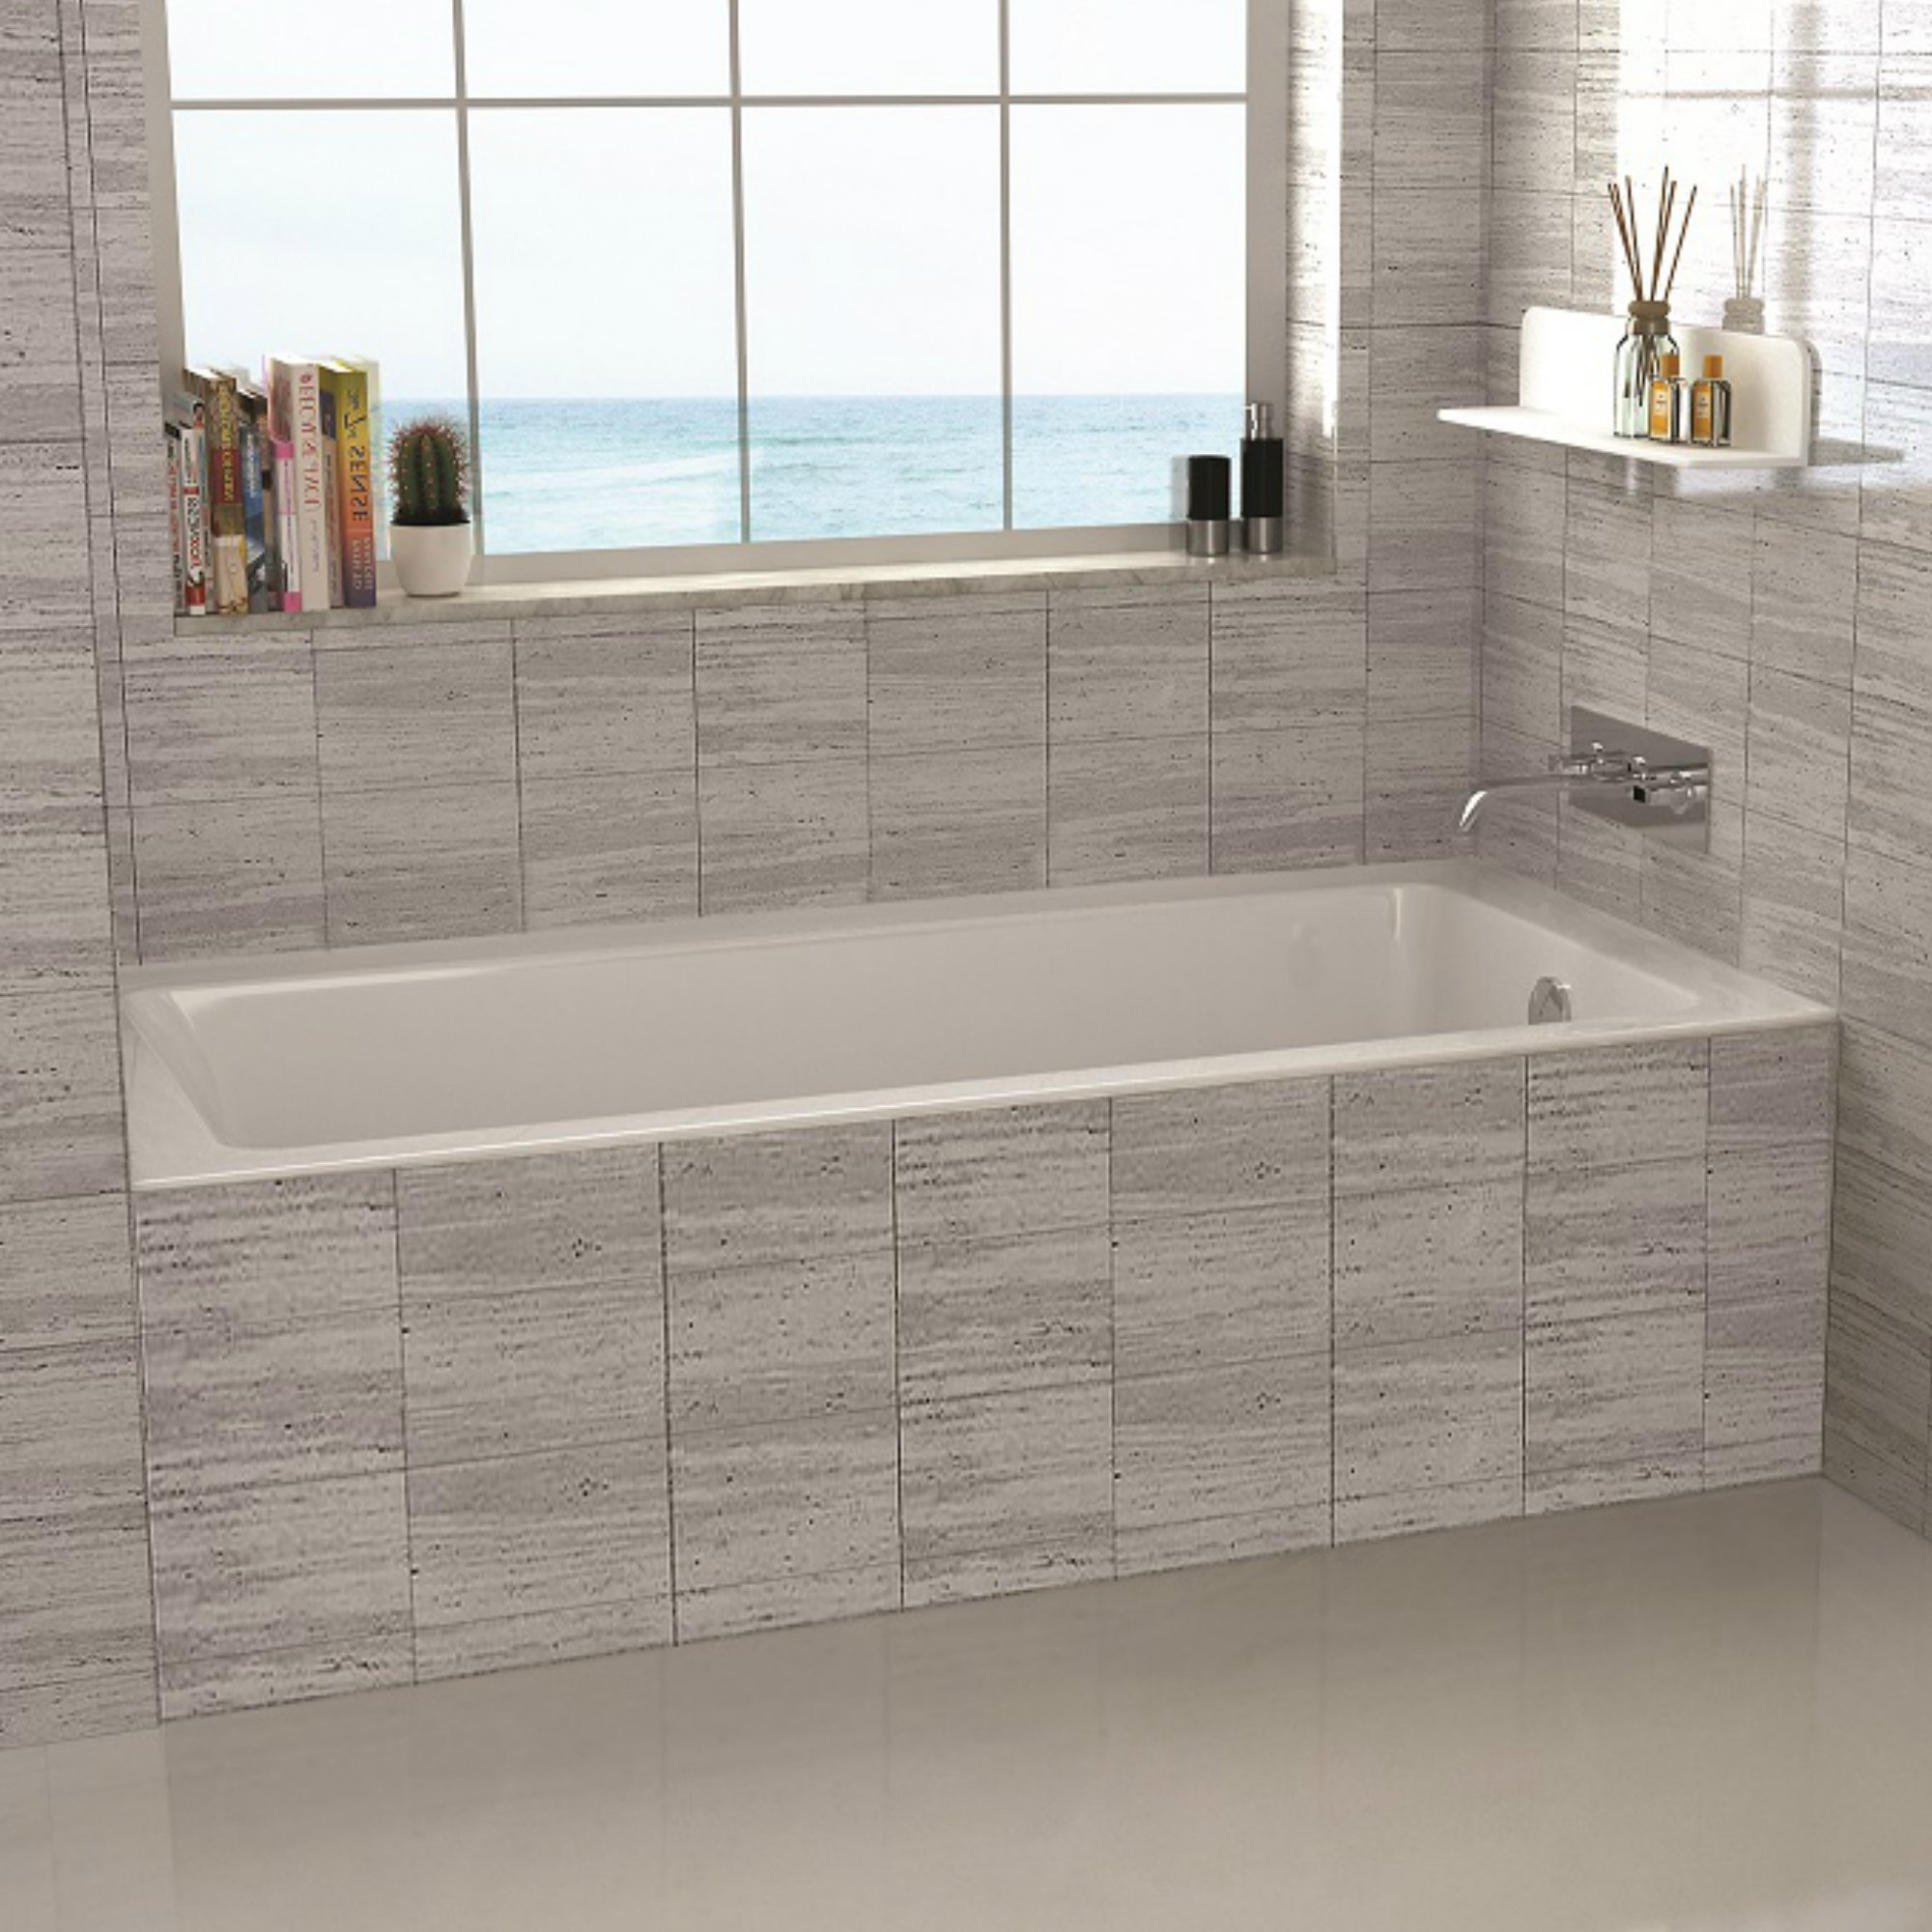 Drop in 54'' x 30'' Soaking Bathtub by Fine Fixtures